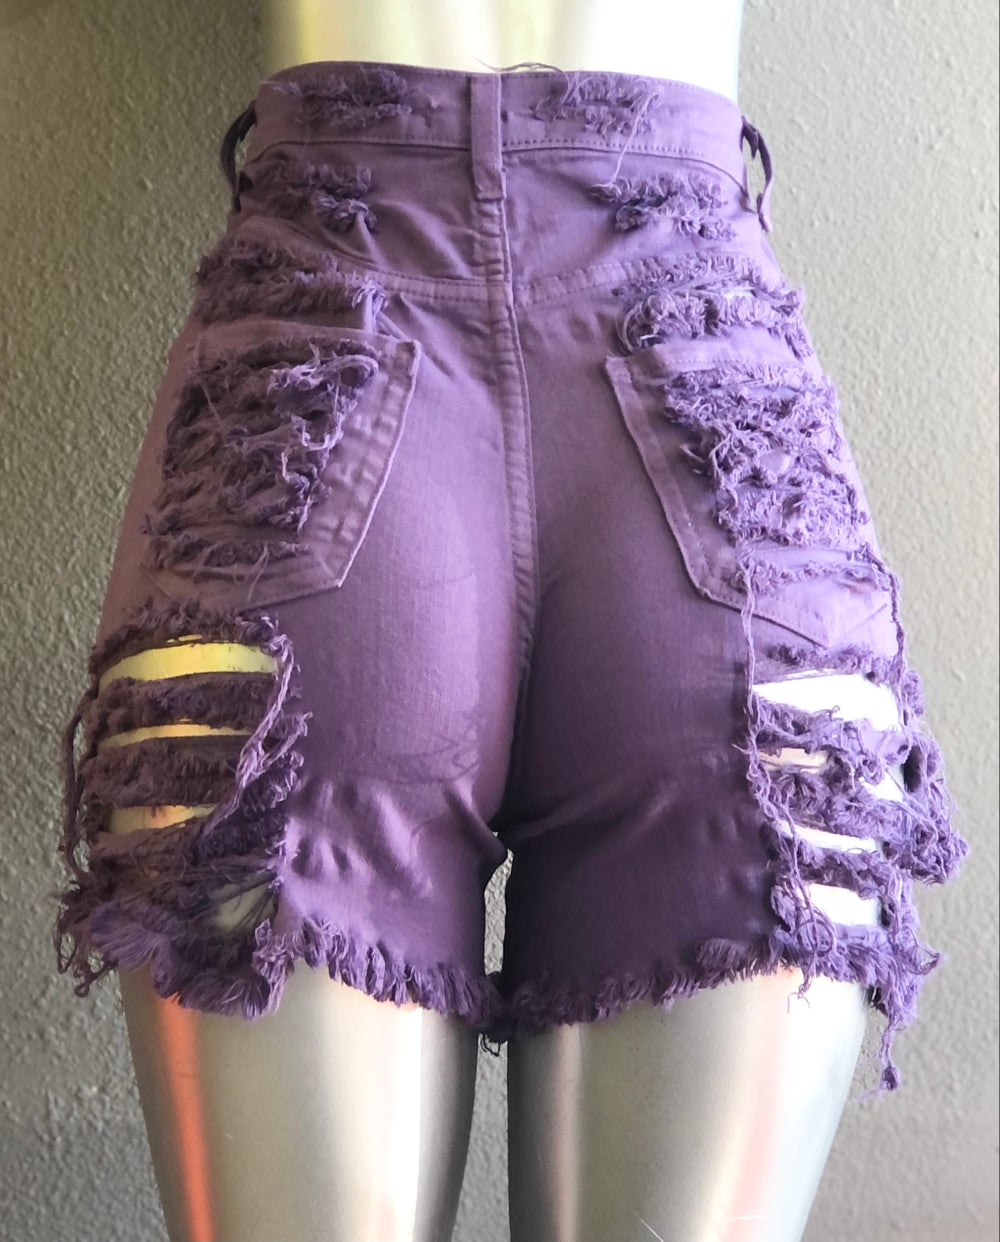 PURPLE FRONT AND BACK DISTRESSED SHORTS